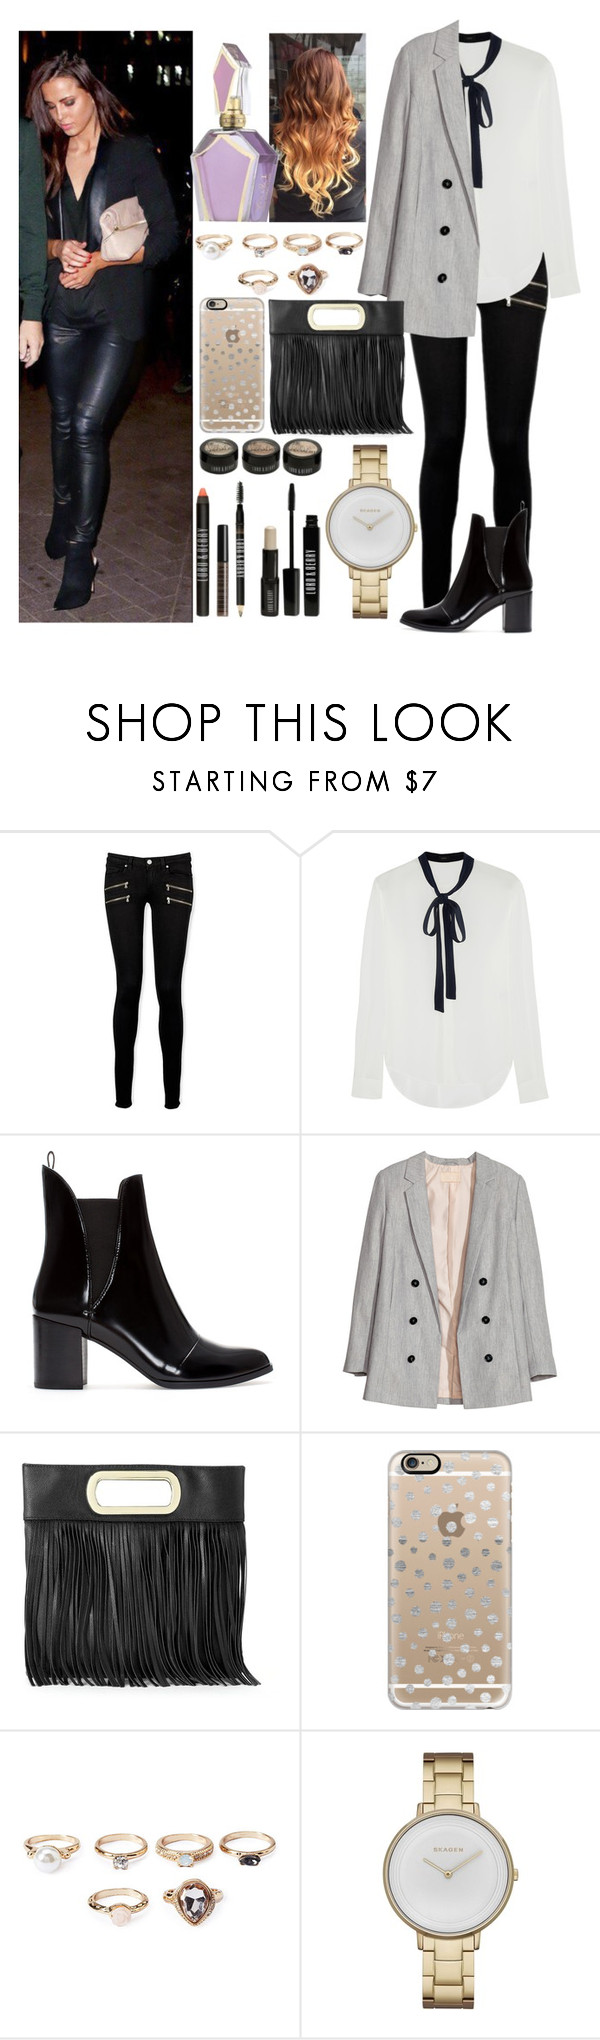 """""""Cirque le Soir with Sophia"""" by zandramalik ❤ liked on Polyvore featuring Paige Denim, Joseph, Zara, H&M, Gunne Sax By Jessica McClintock, Casetify, Forever 21, Skagen and Lord & Berry"""